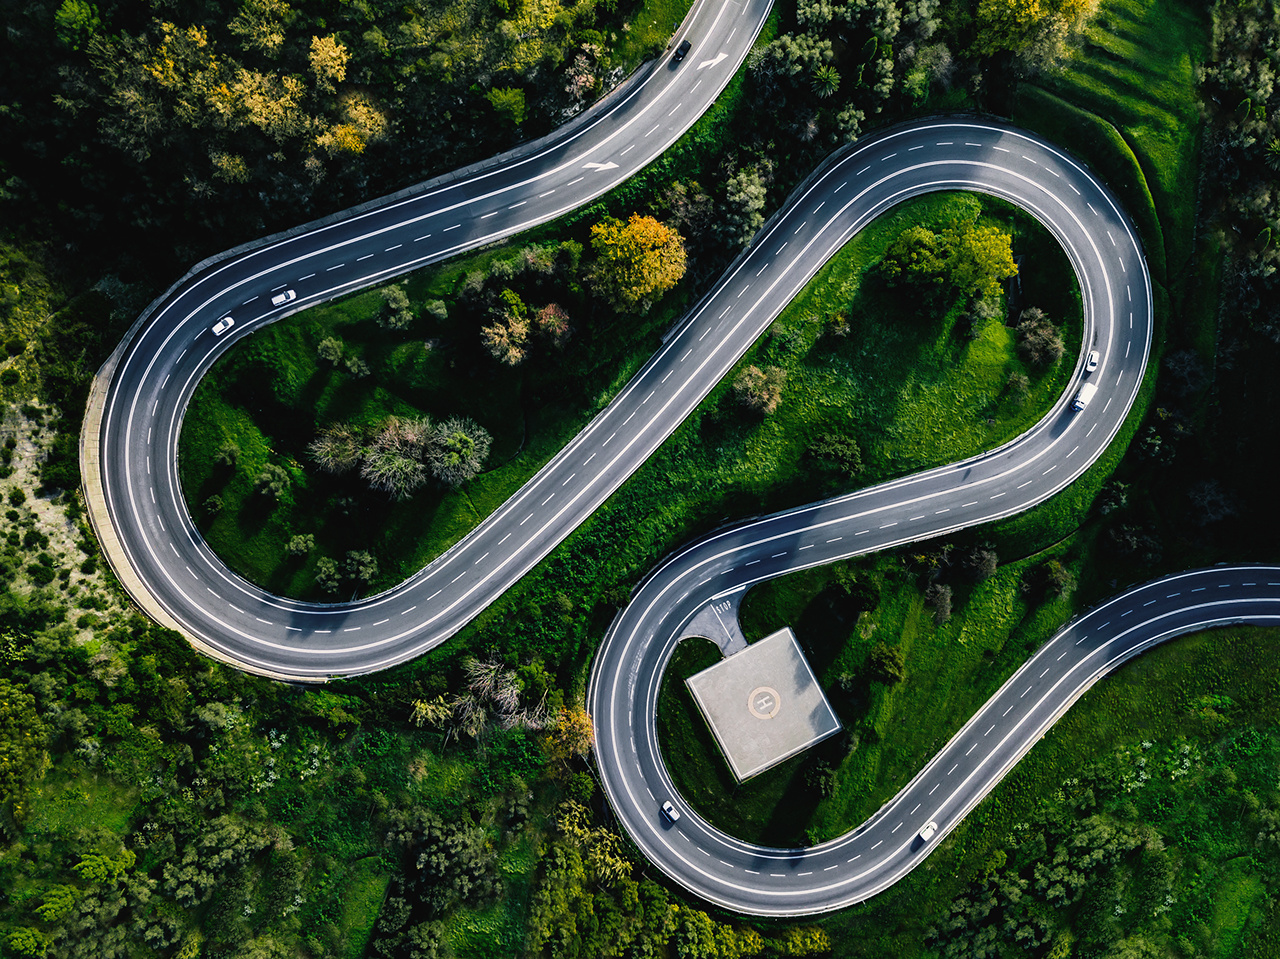 Aerial view of winding curved road with helicopter parking in Italy countryside